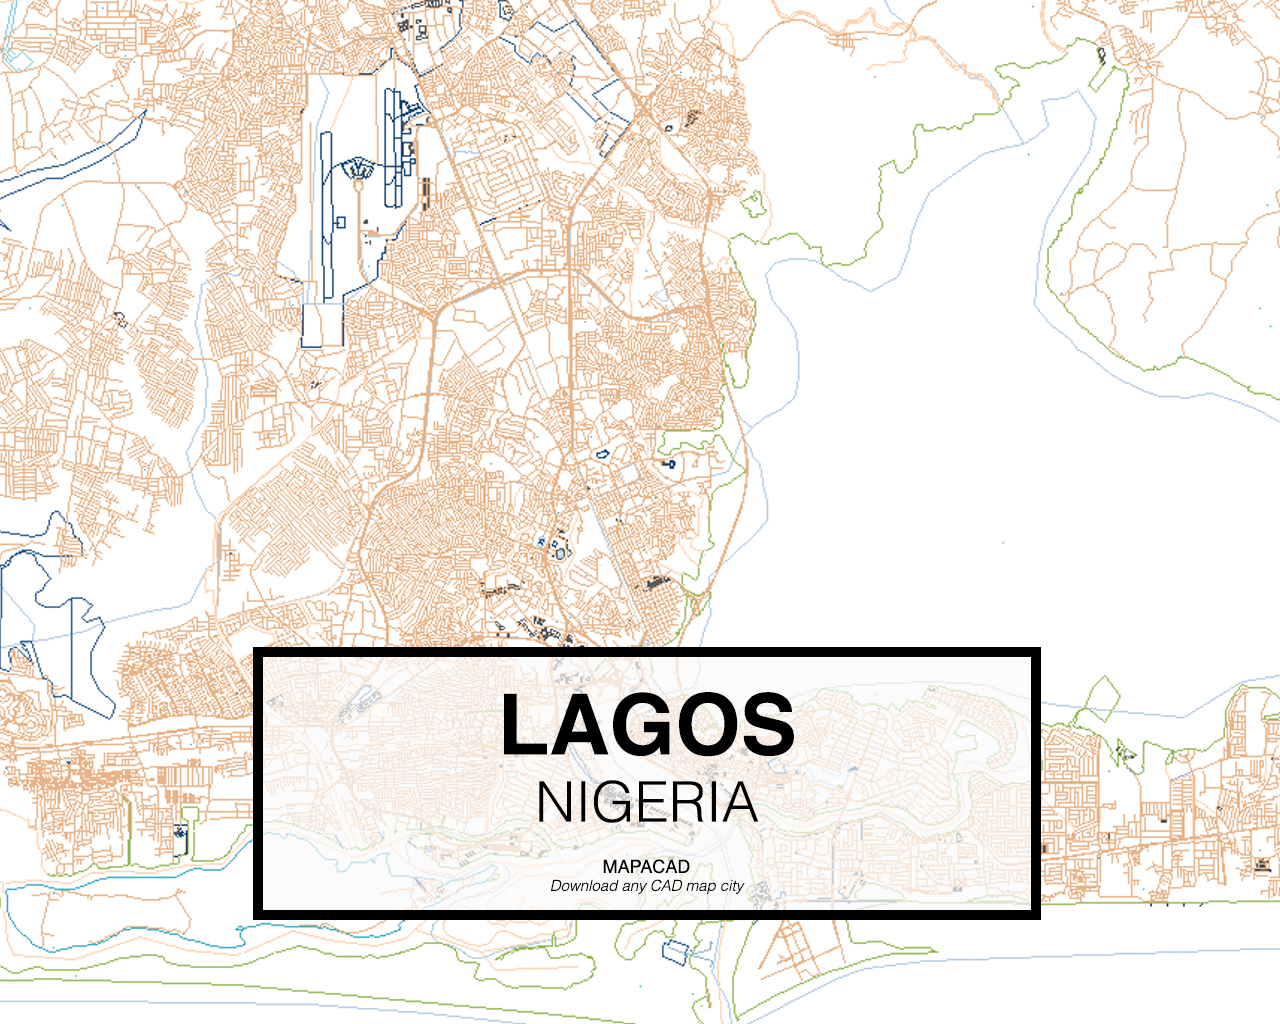 Download lagos dwg mapacad lagos nigeria 01 mapacad download map cad dwg gumiabroncs Gallery